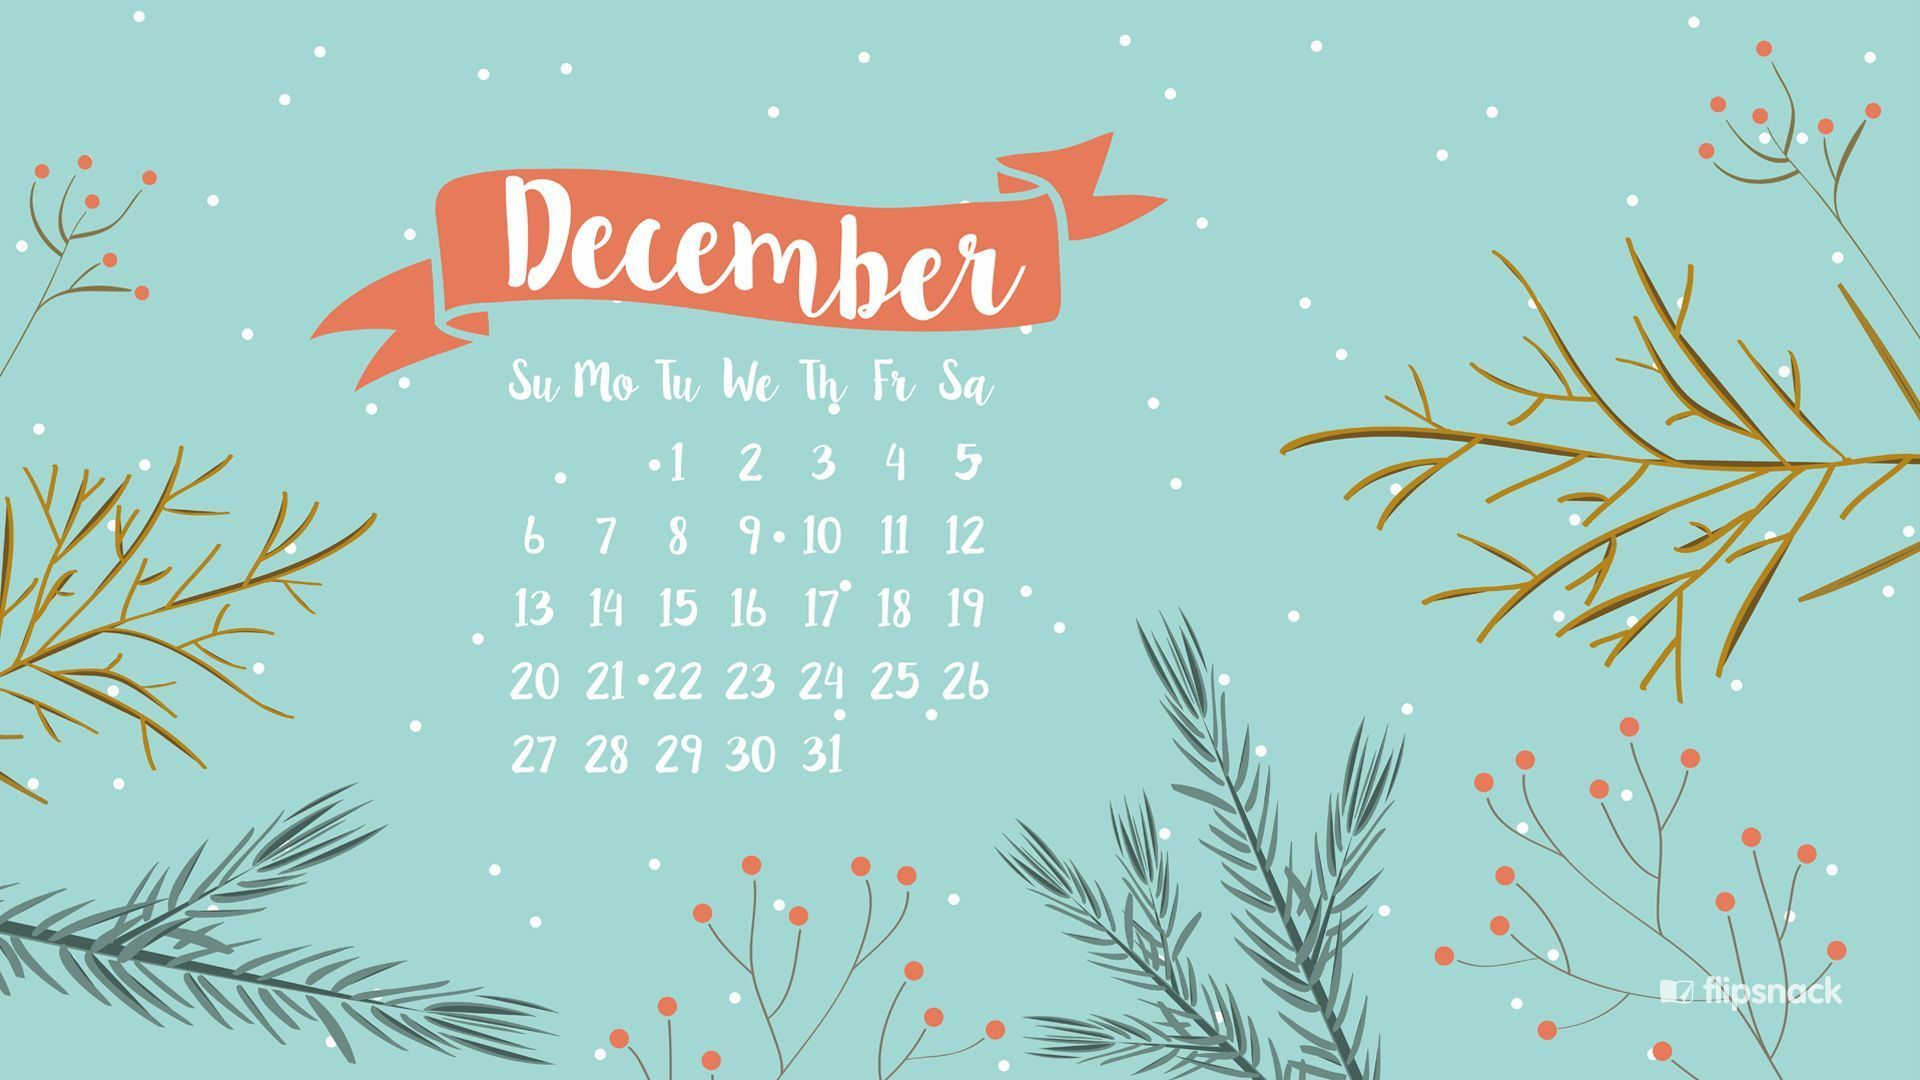 December 2019 Calendar Wallpaper Floral Vintage Desktop